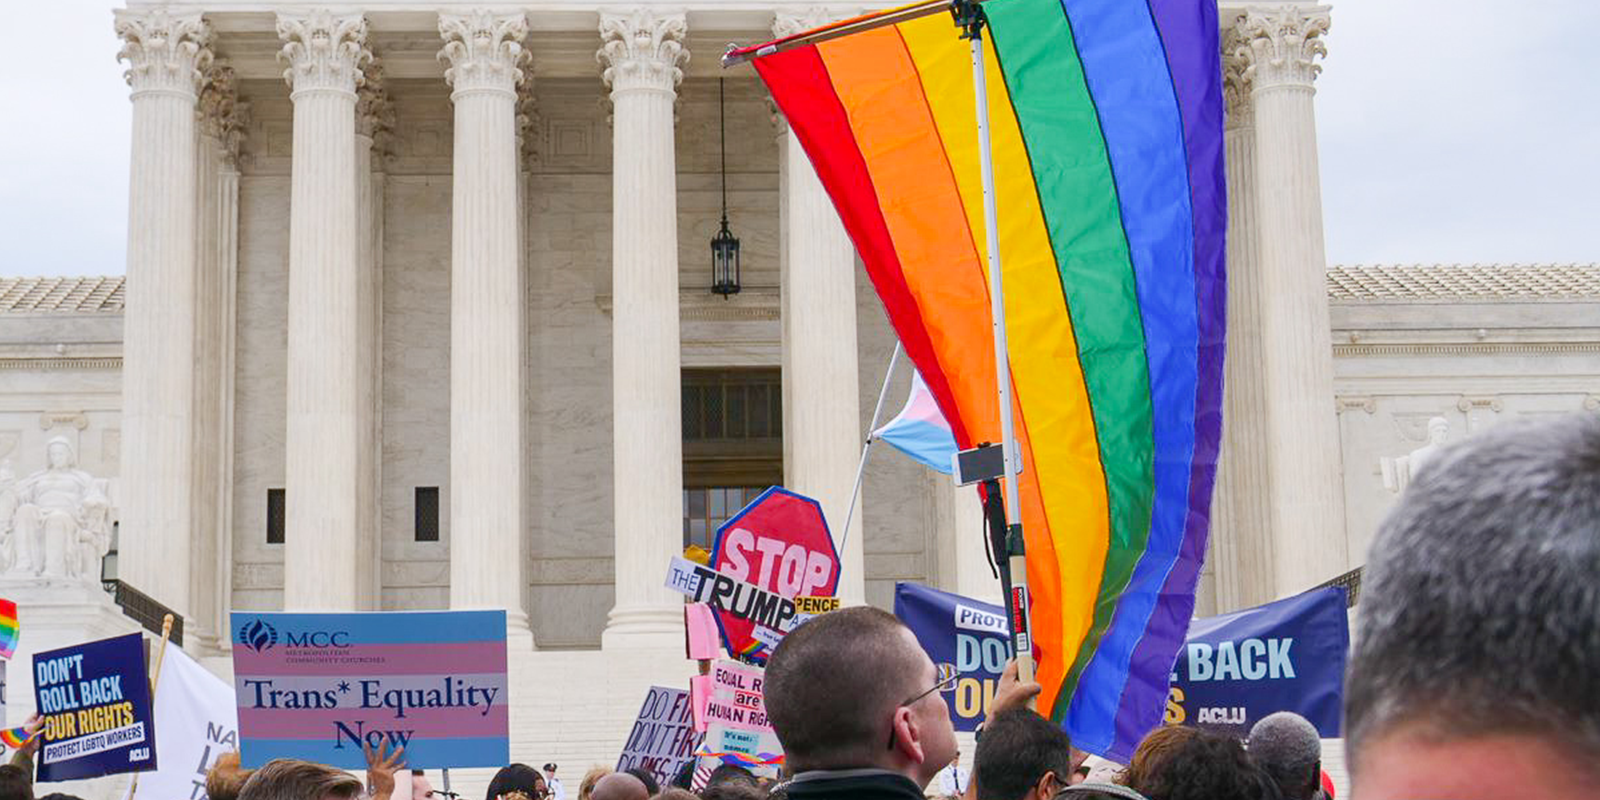 Gay pride flag in front of supreme court entrance with pro-LGBTQ equality signs